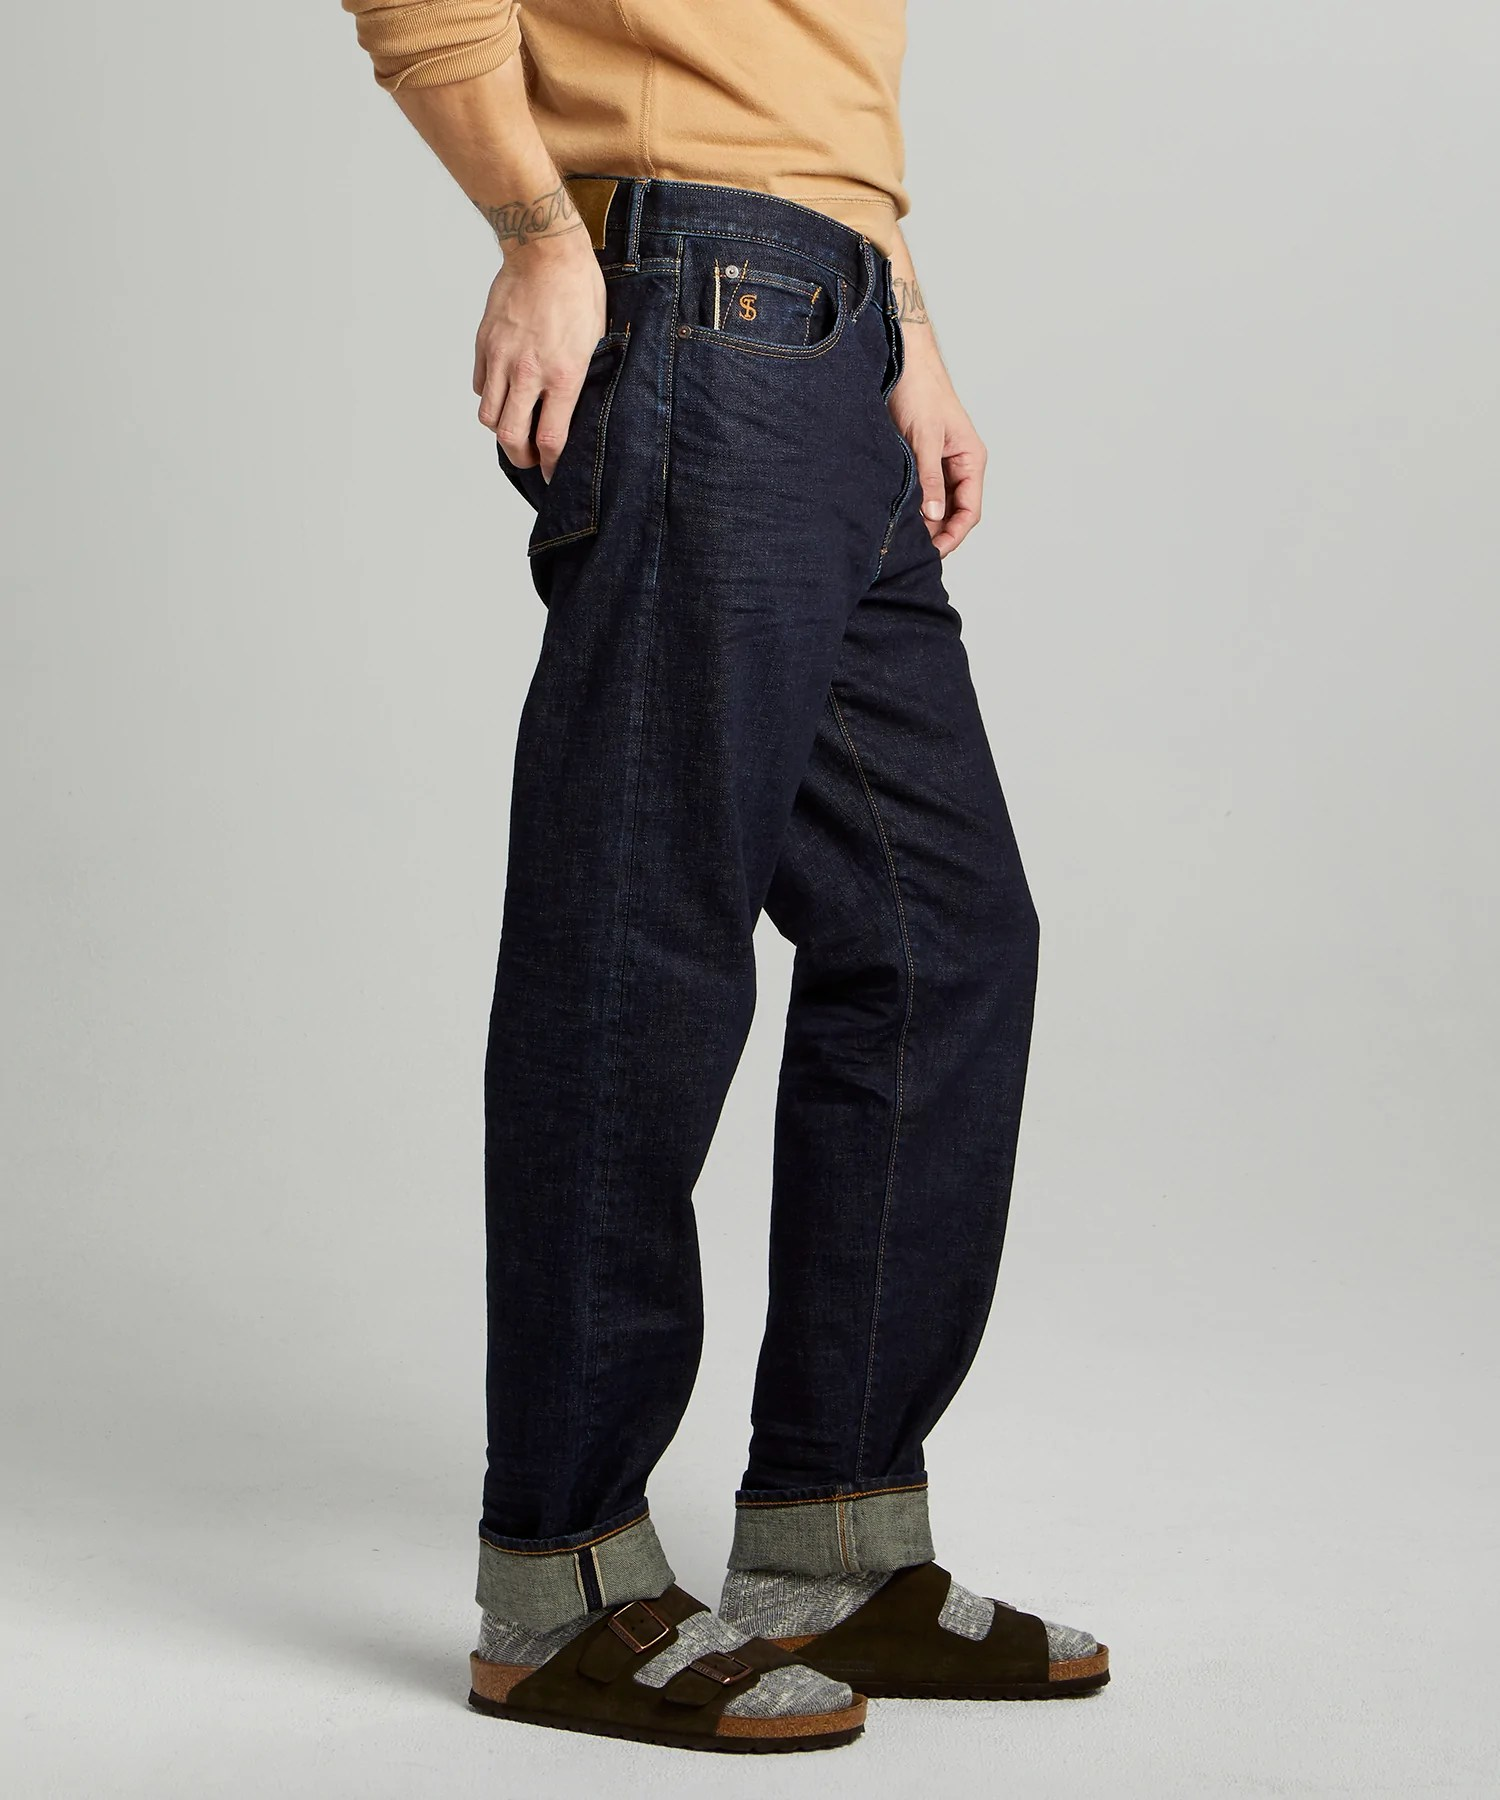 The Relaxed Jean In Indigo Rinse Todd Snyder